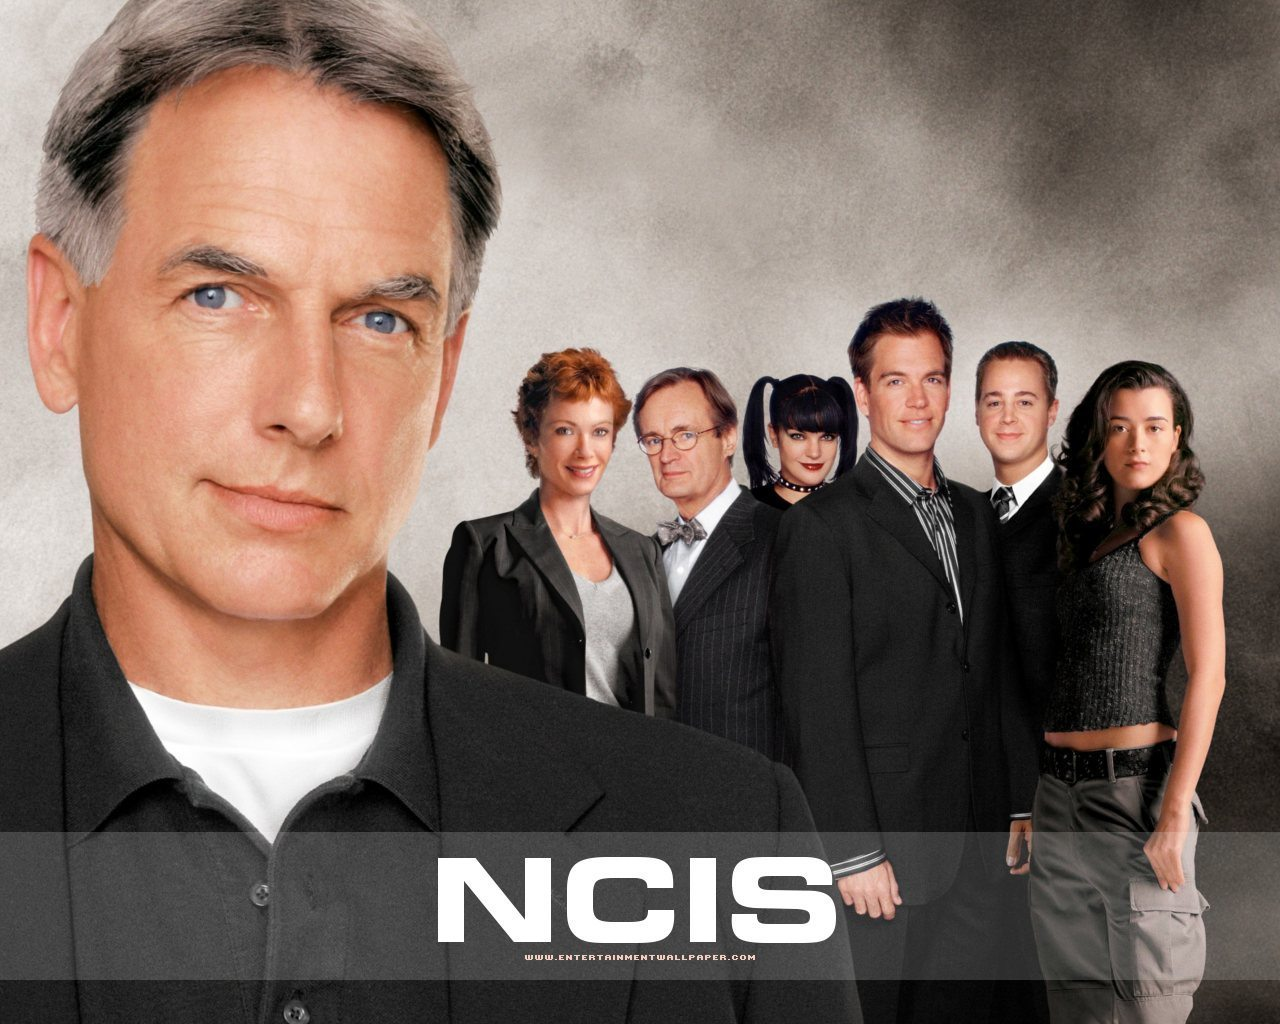 NCIS Wallpapers ncis 13737939 1280 1024